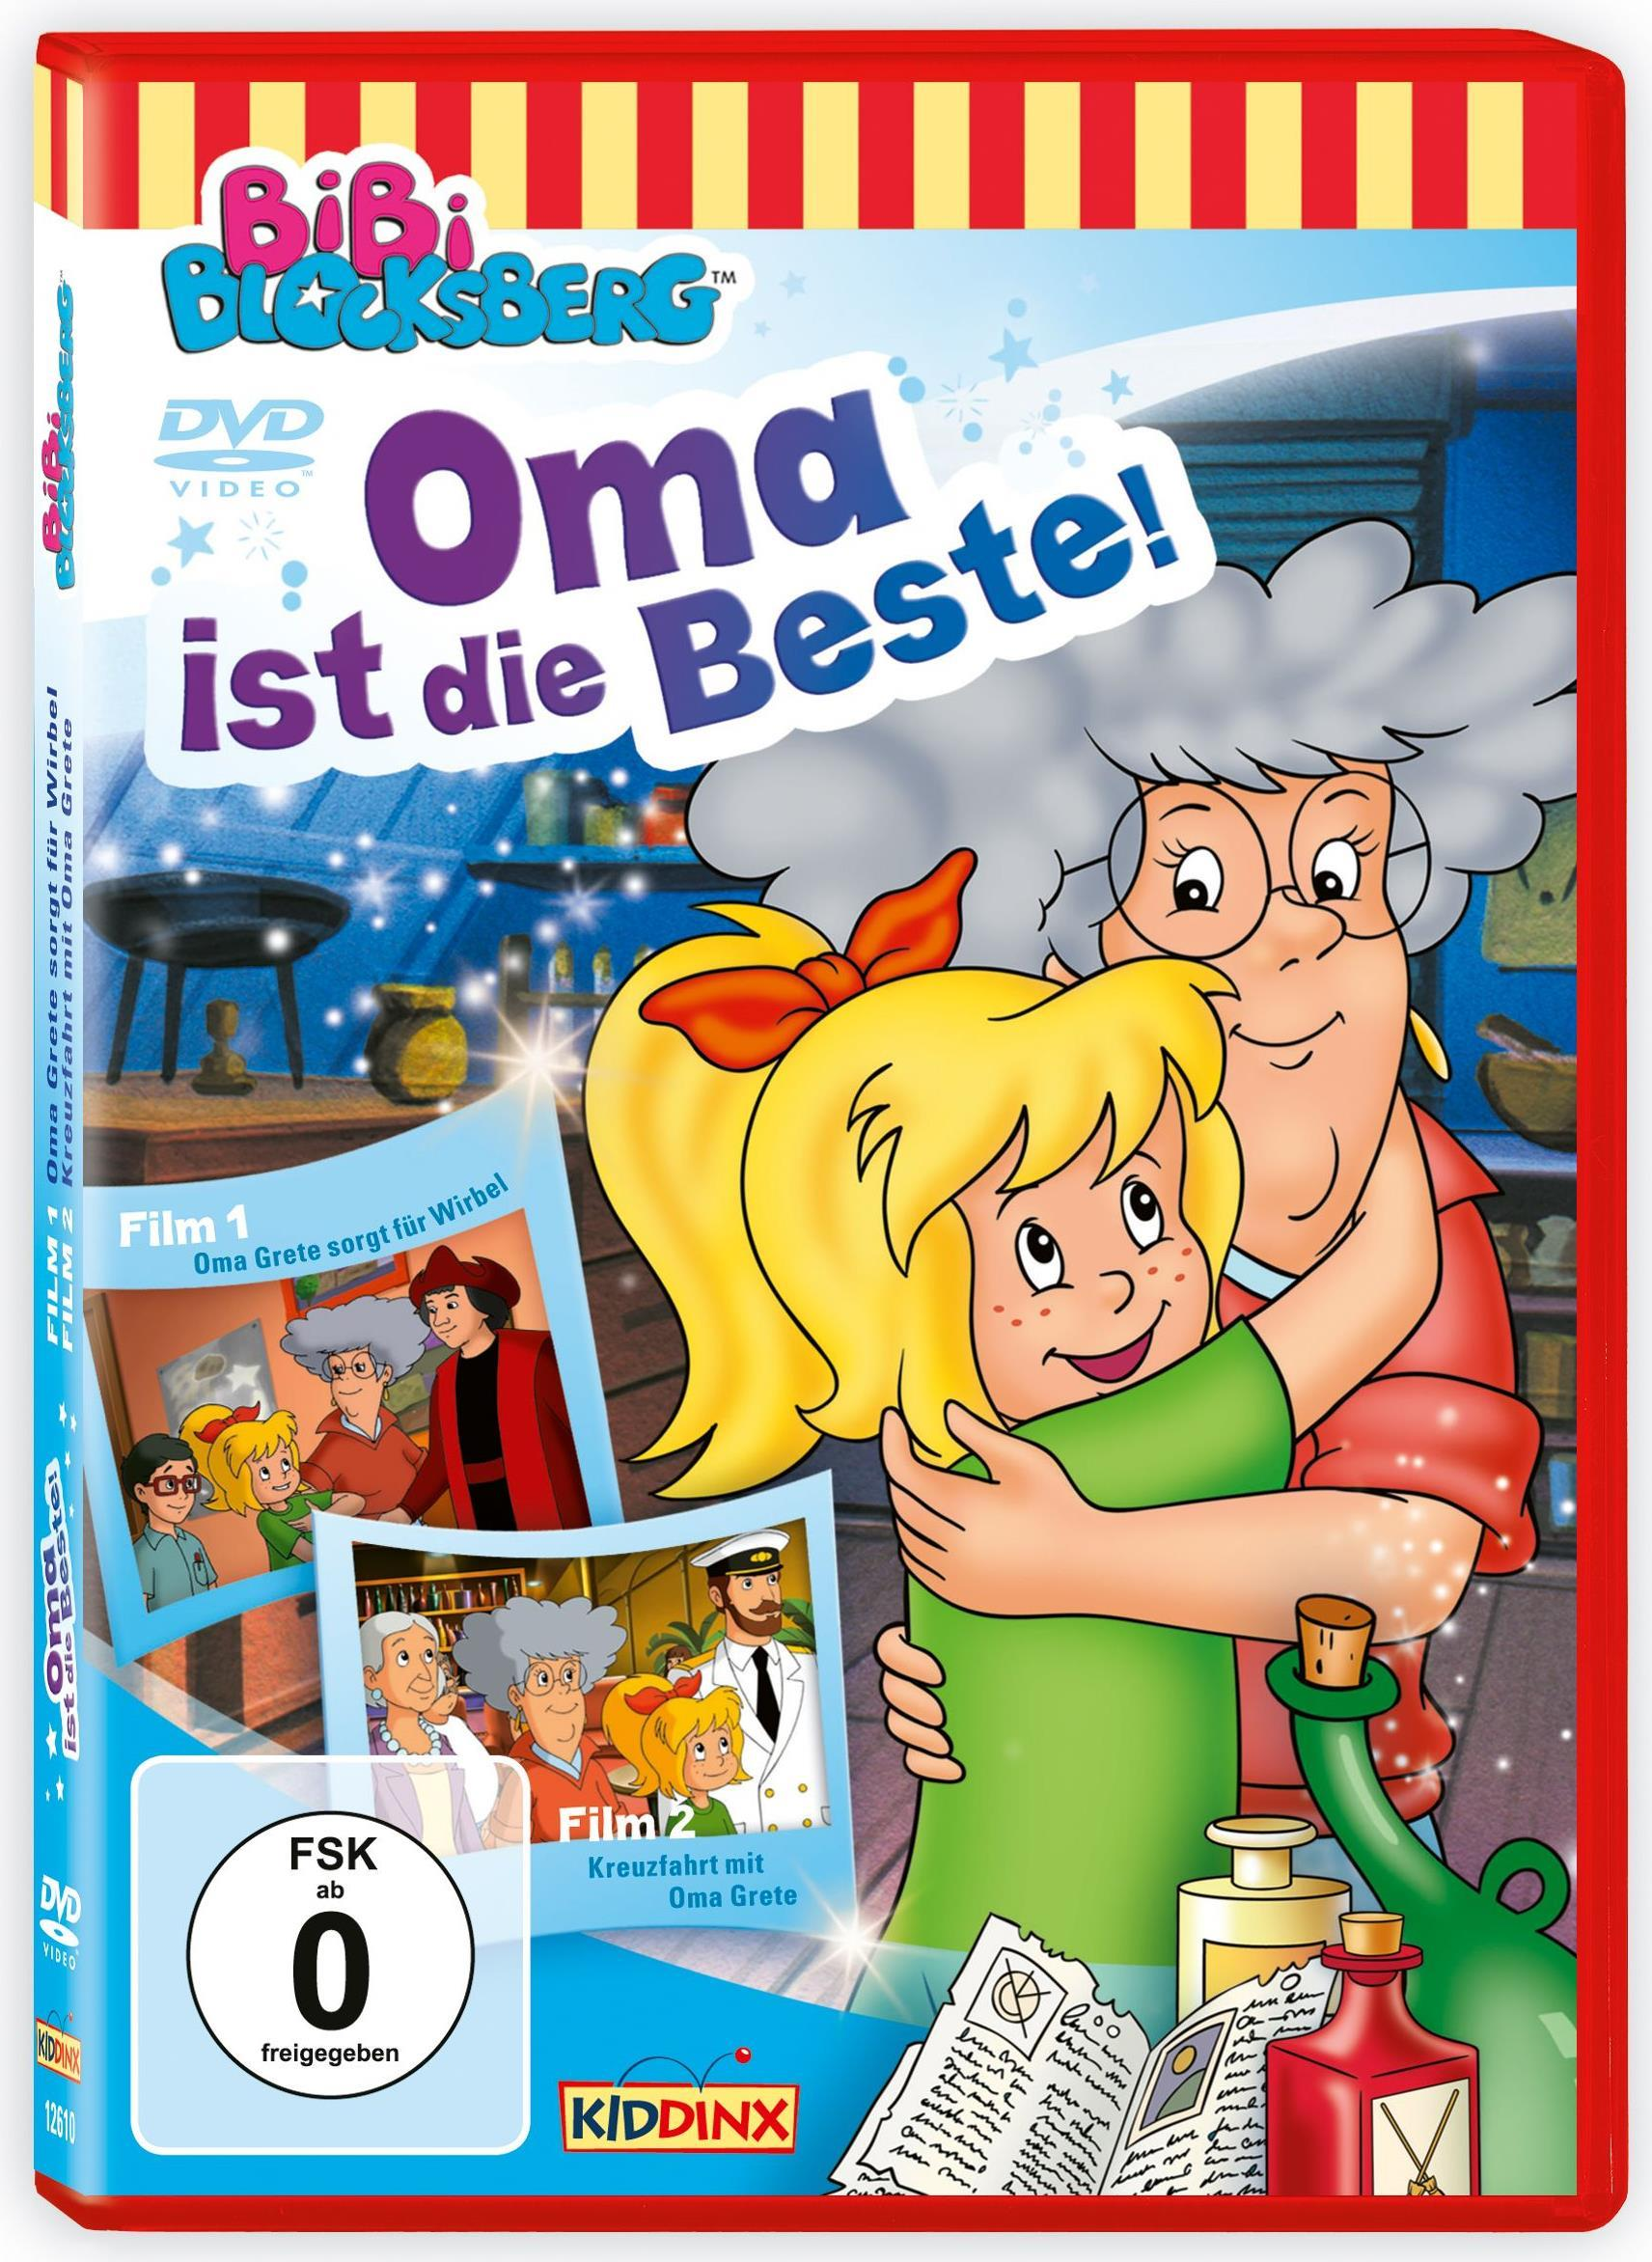 Kiddinx 12610 DVD 2D Deutsch Blu-Ray-/DVD-Film ...